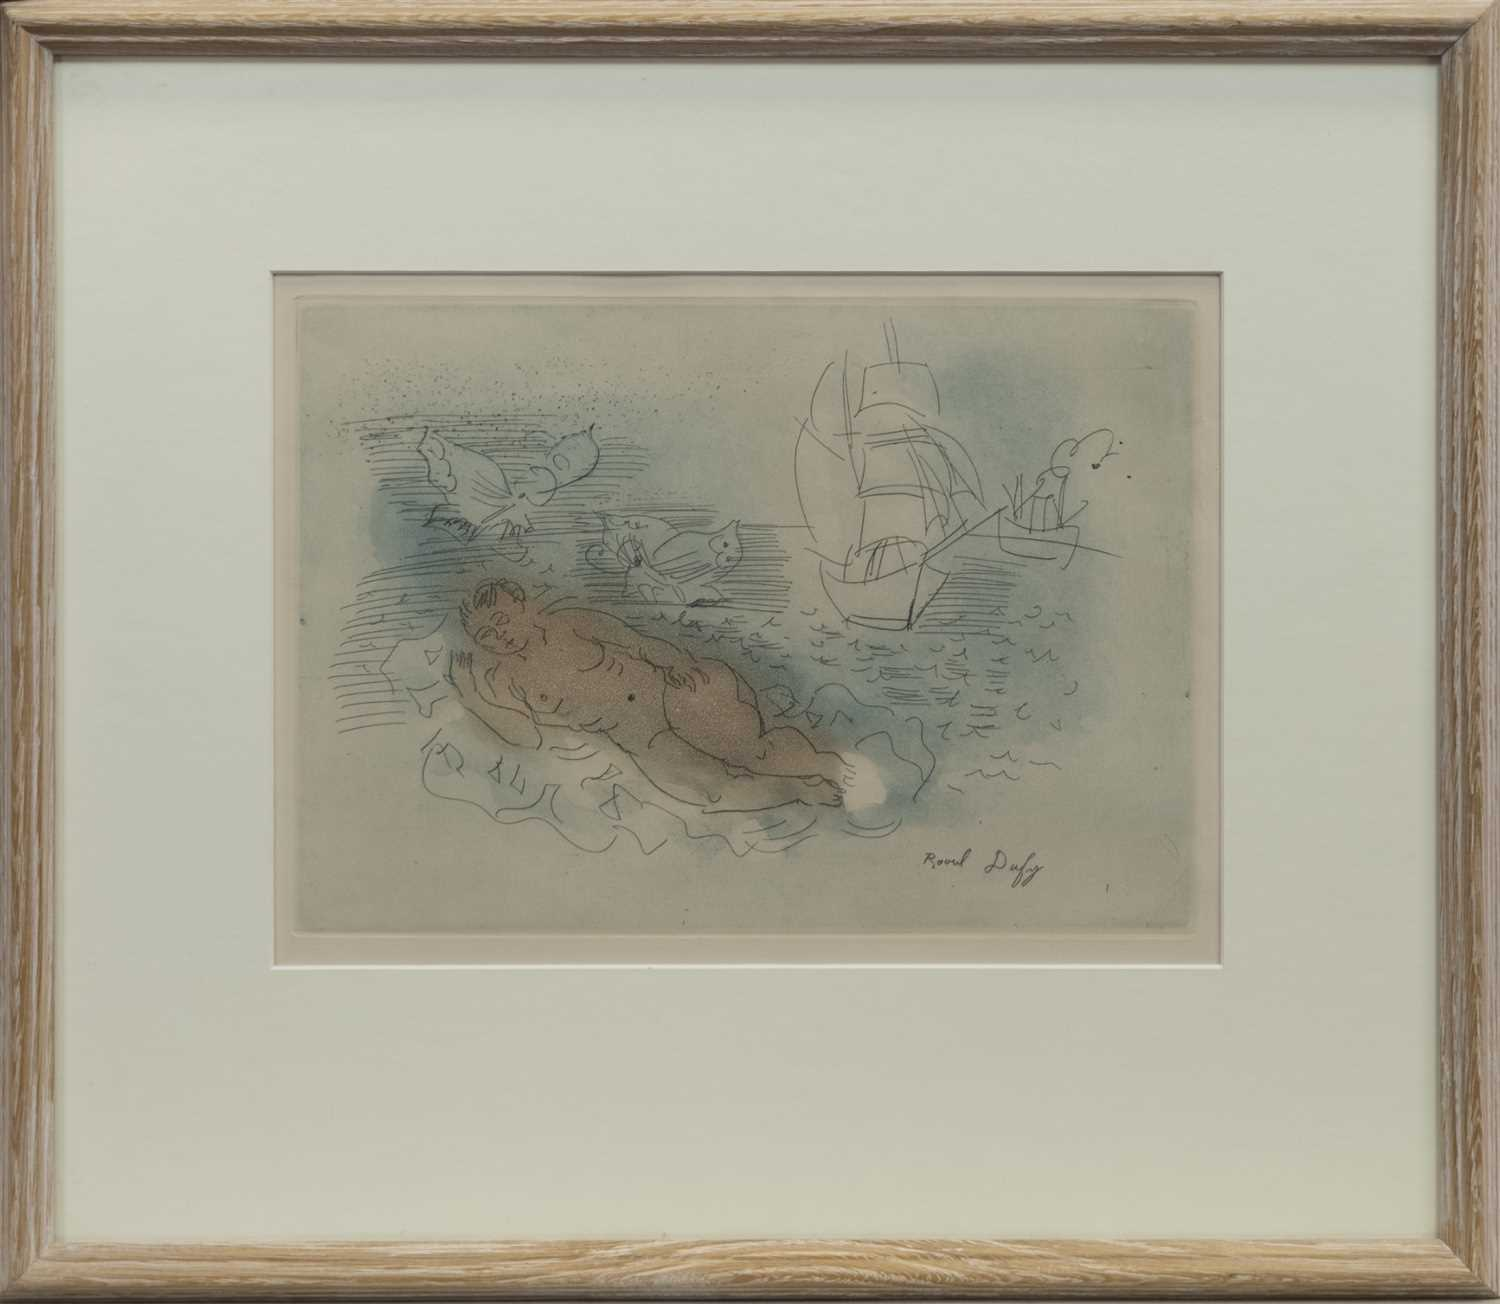 Lot 27 - PETITE BAIGNEUSE AUX PAPILLONS, AN ETCHING AND AQUATINT BY RAOUL DUFY